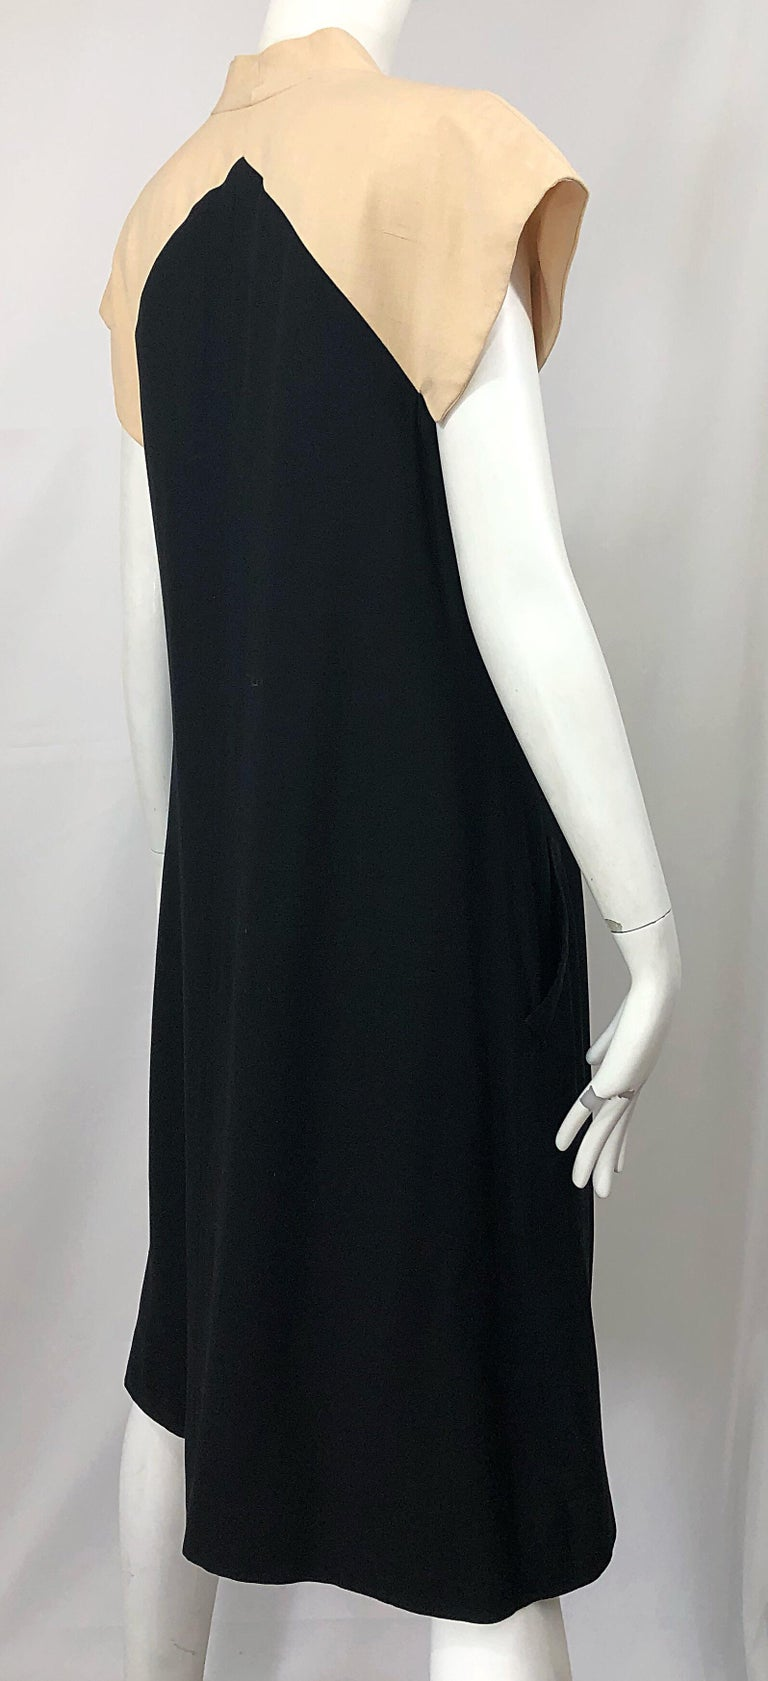 Vintage Halston 1970s Optical Illusion Black + Khaki 70s Trapeze Dress For Sale 6